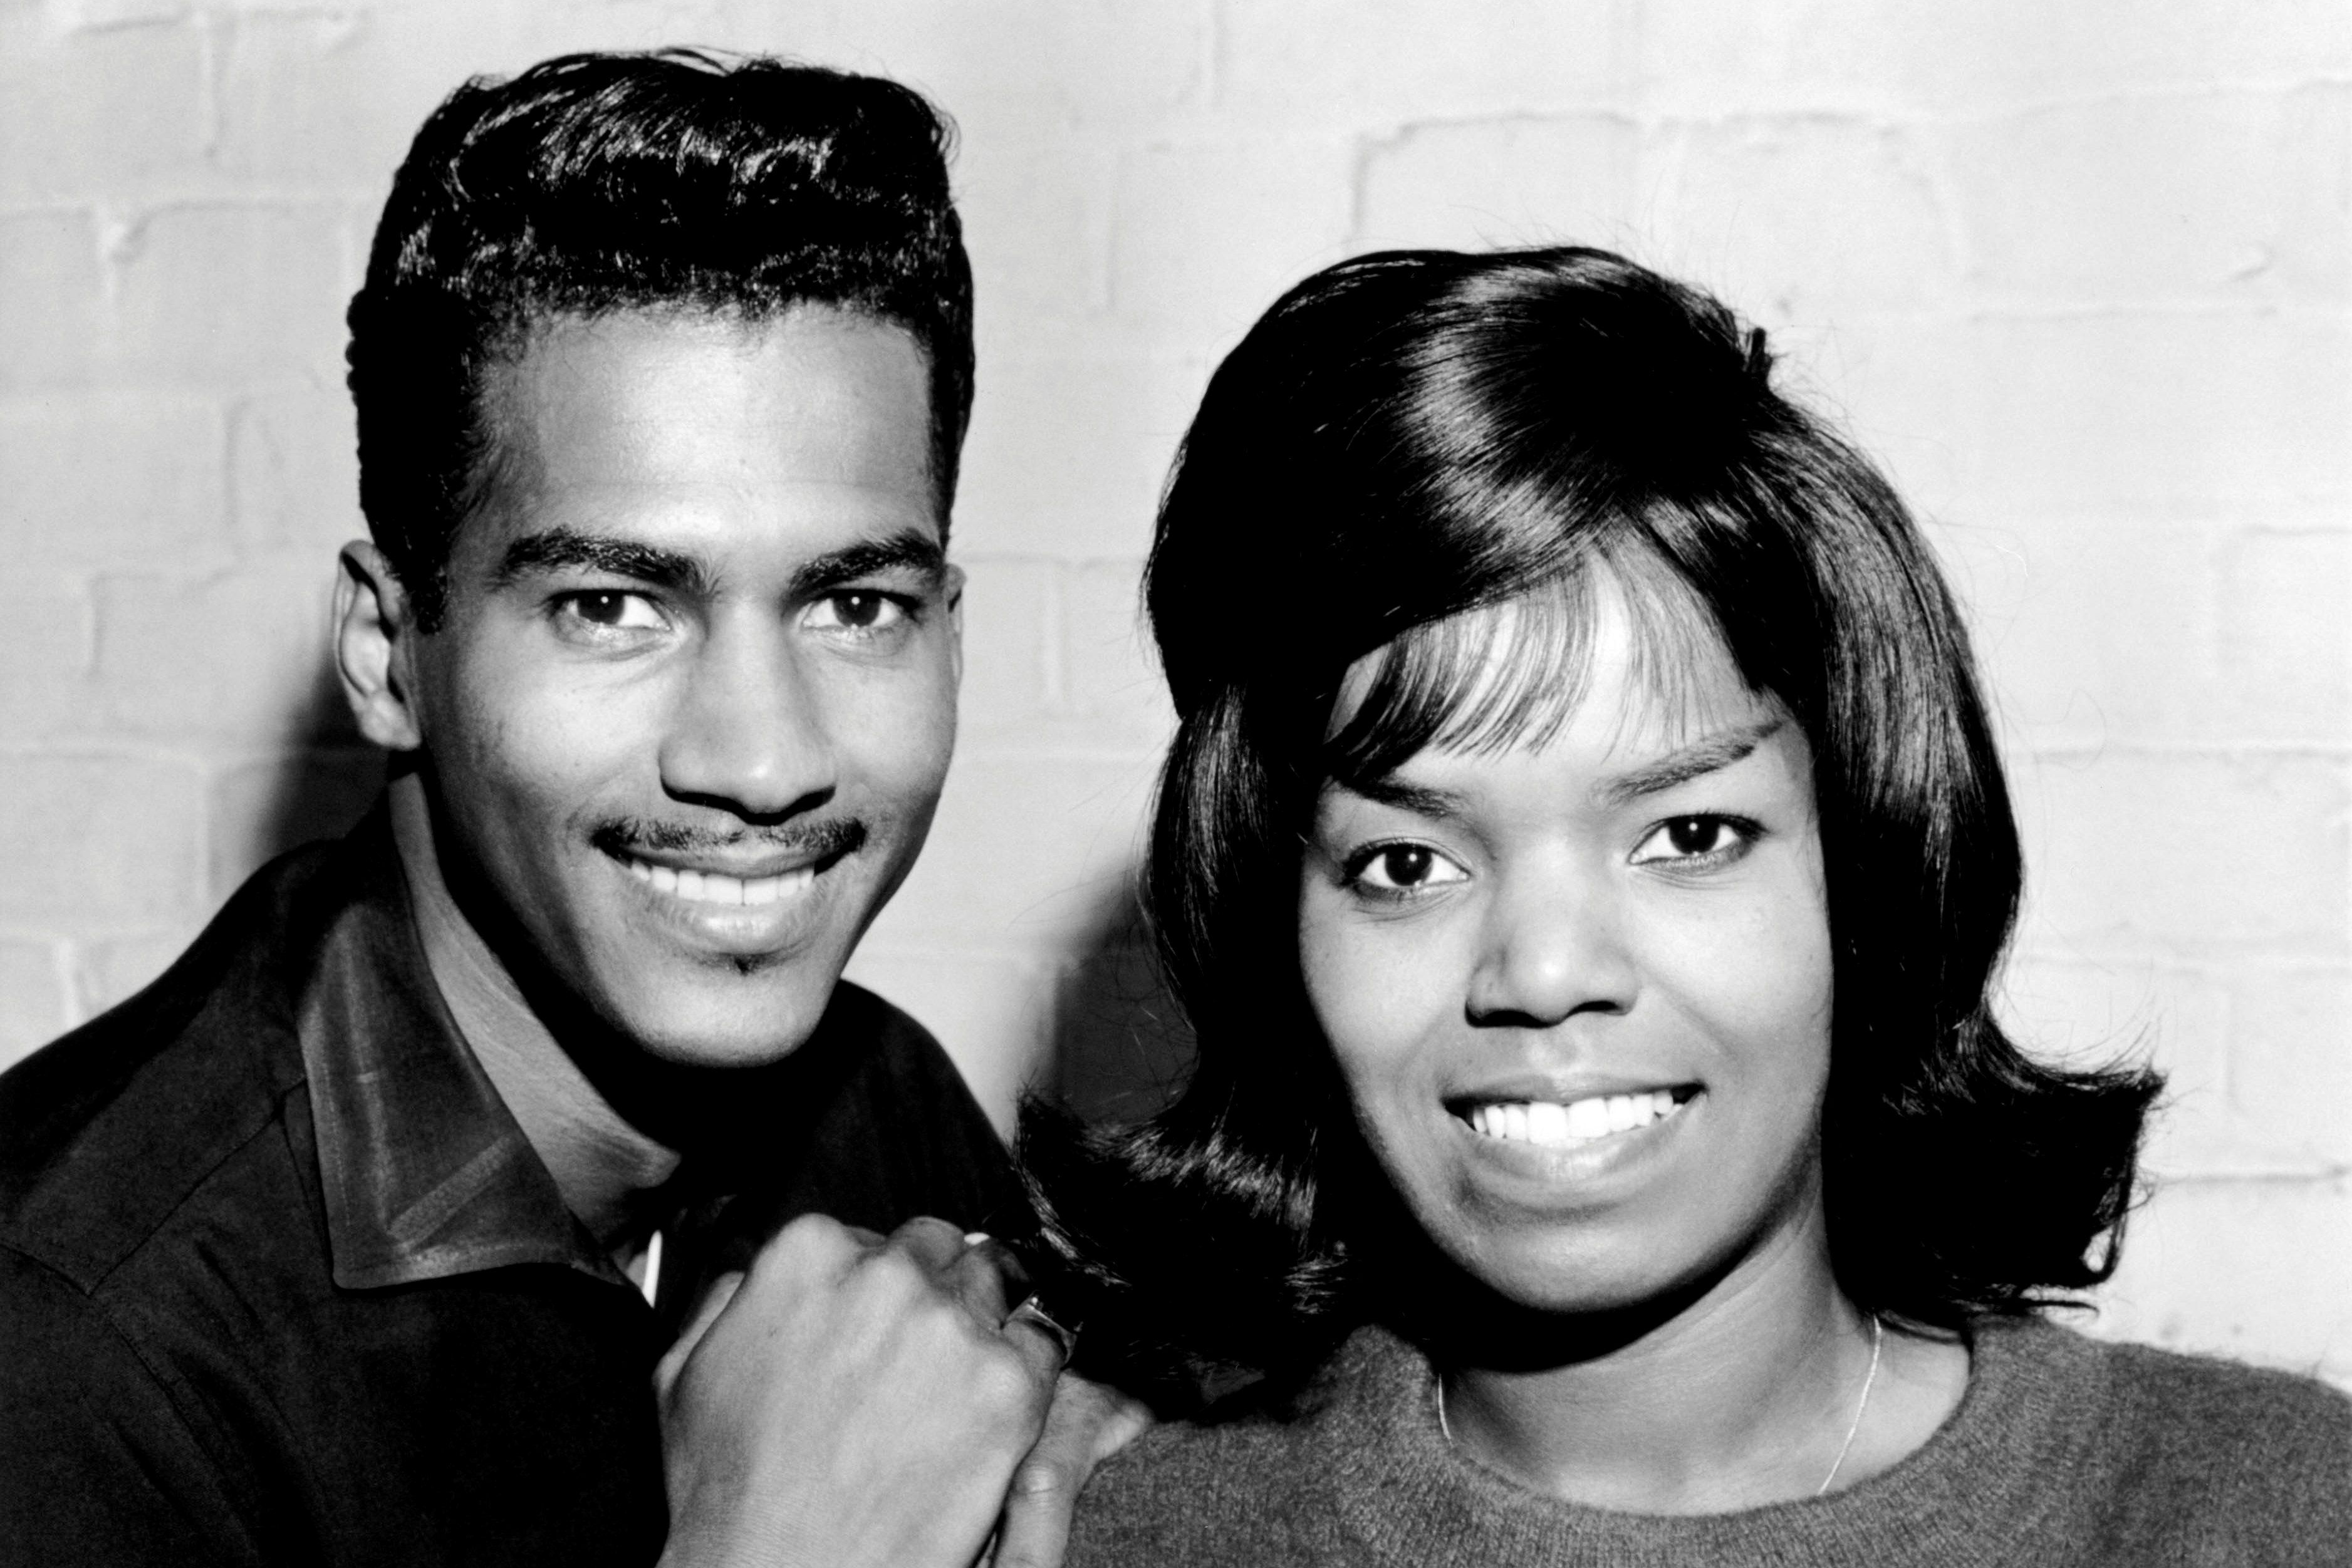 20 Romantic Duets From the 50s, 60s, and 70s